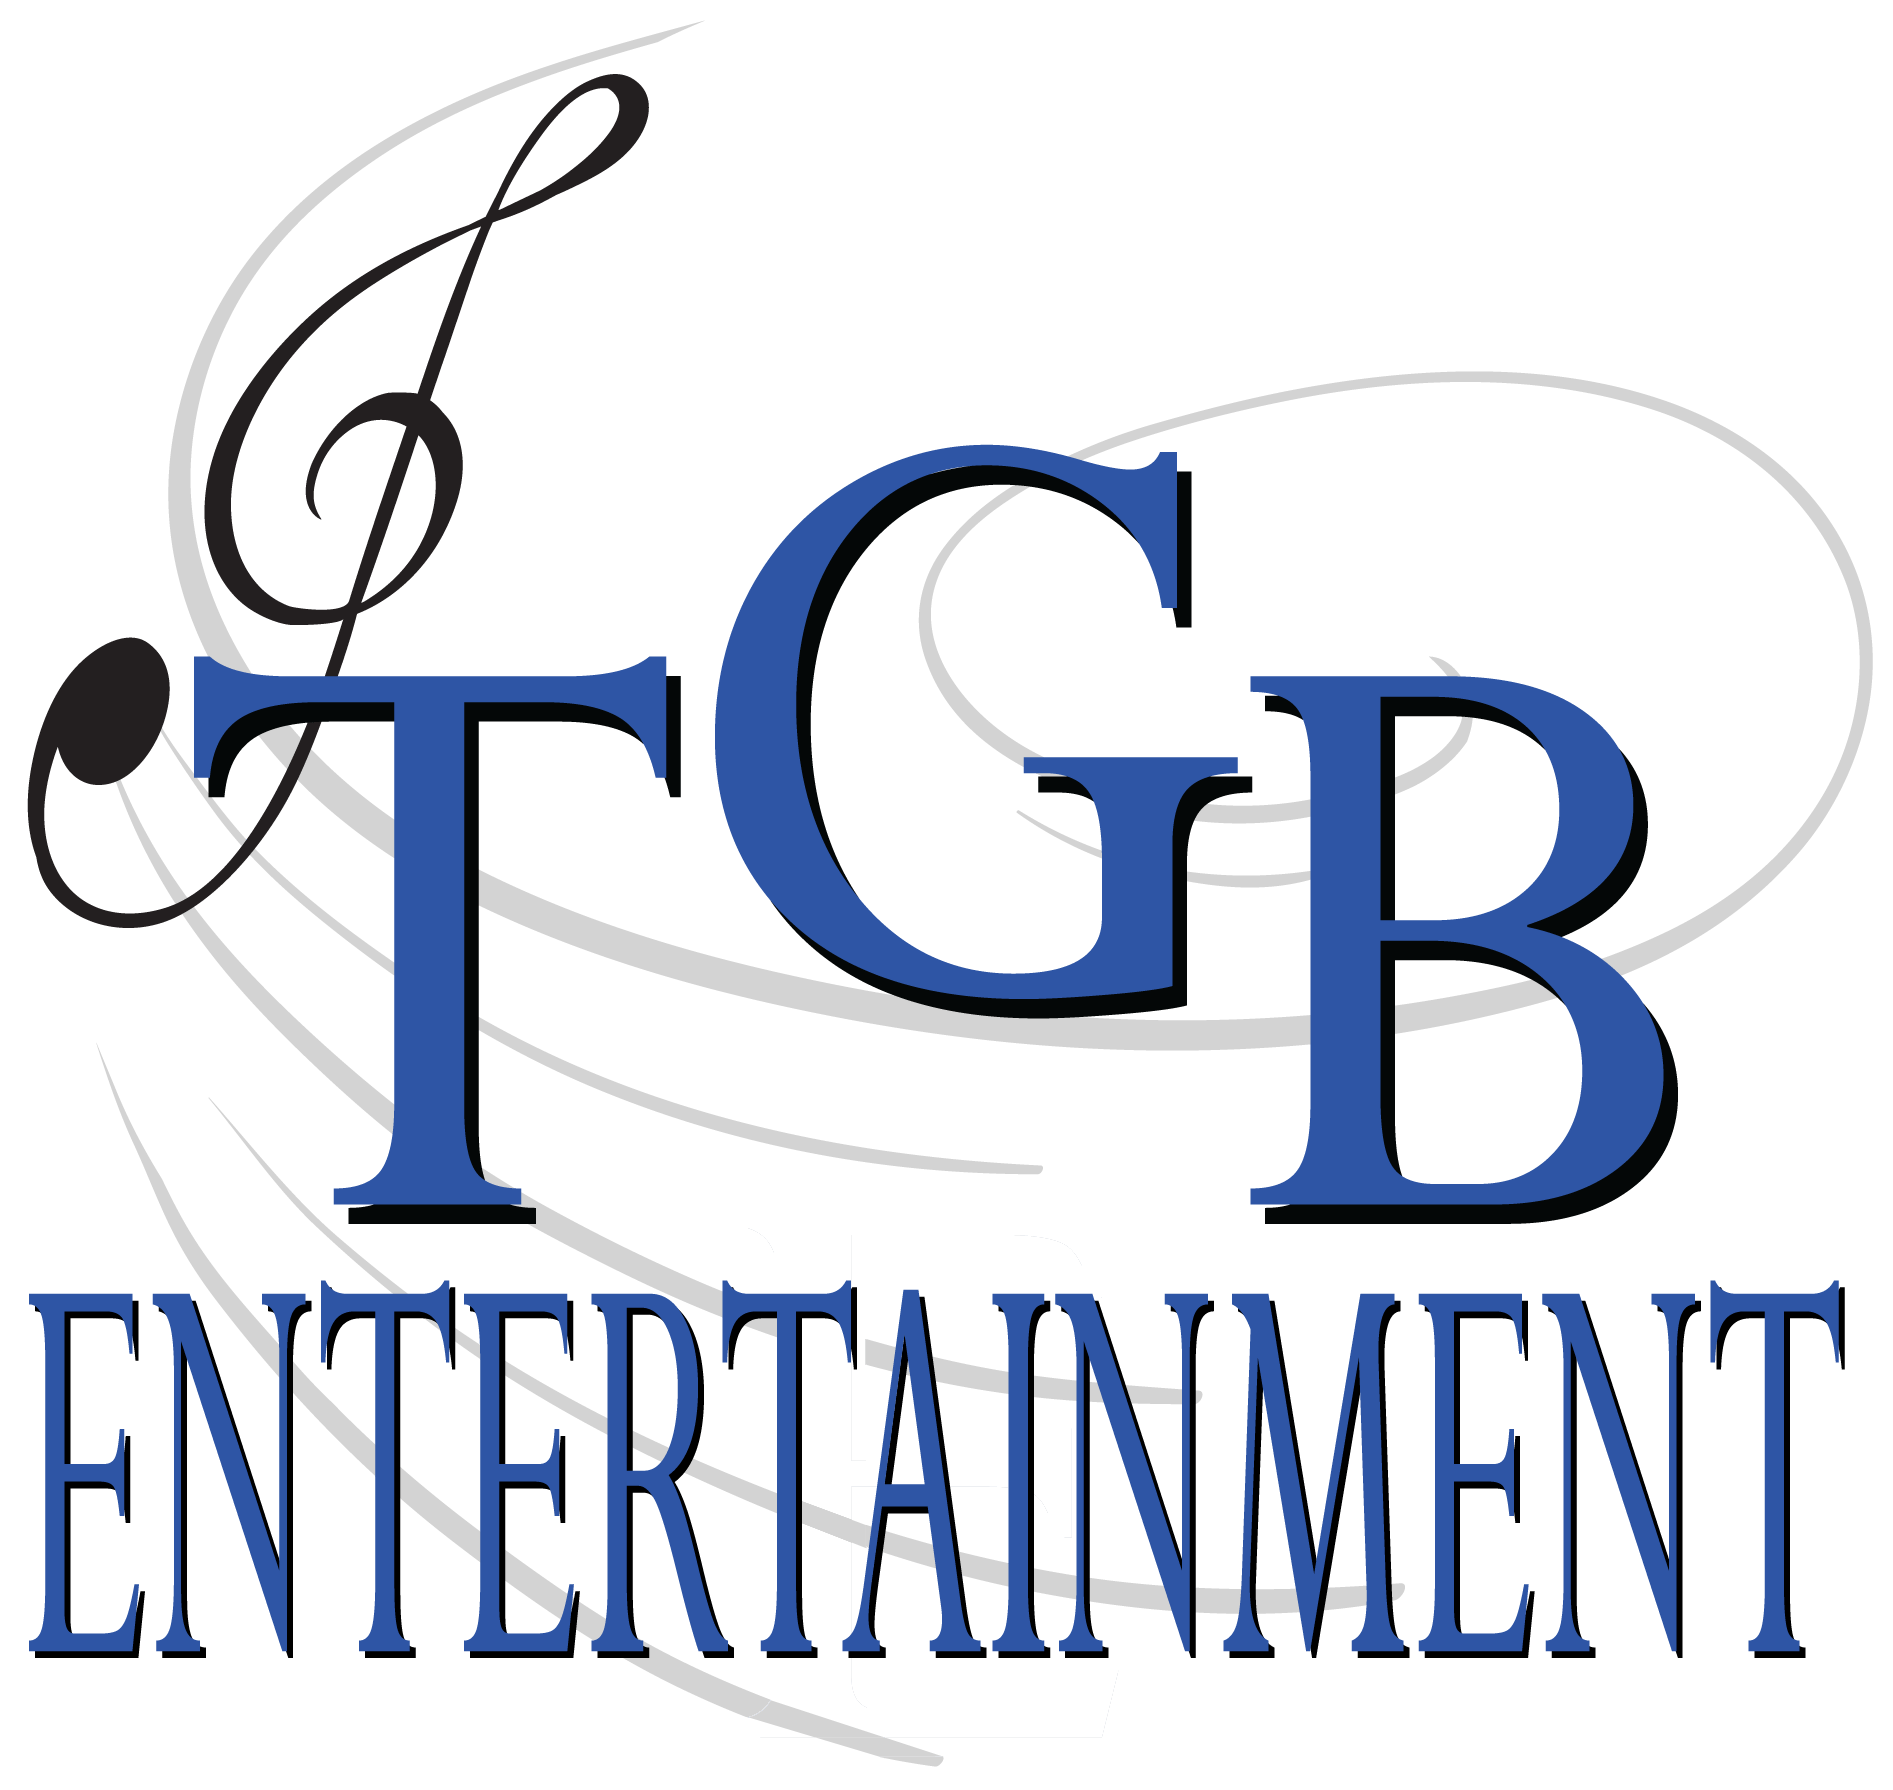 TGB Entertainment